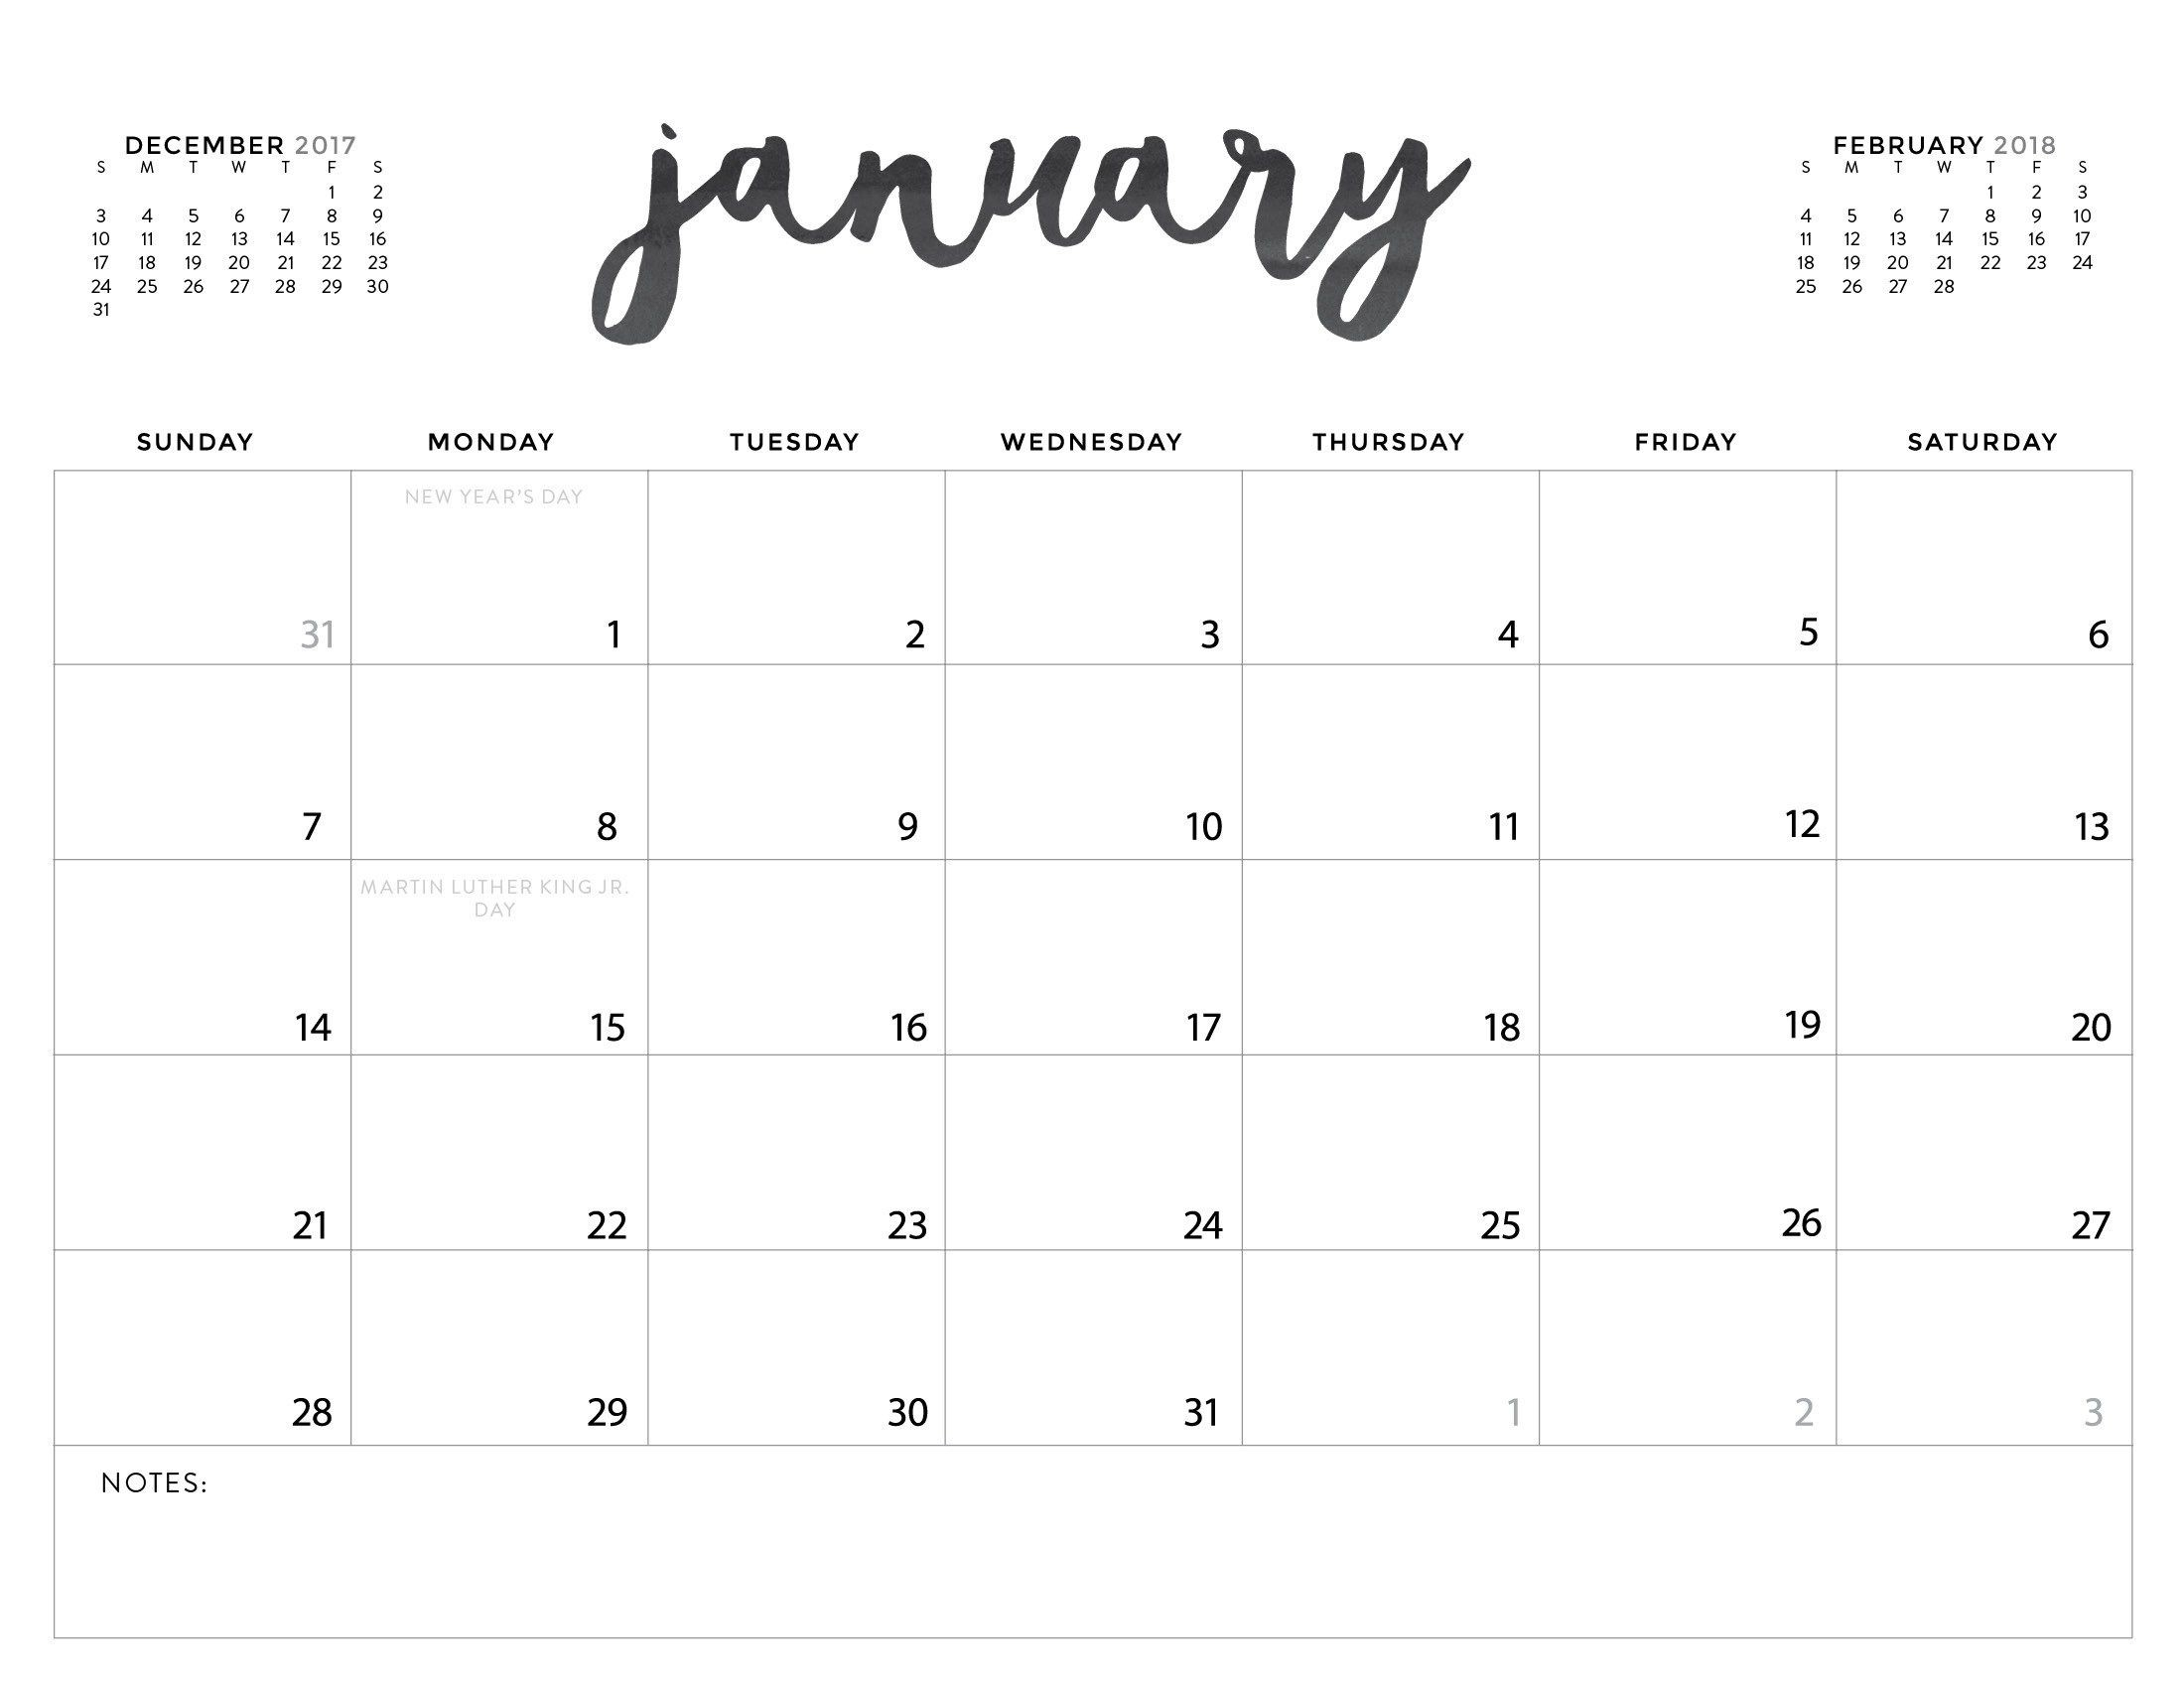 Download Your Free 2018 Printable Calendars Today! There Are-A4 Monthly Calendar Template Print Over 2 Pages Monday Start Free